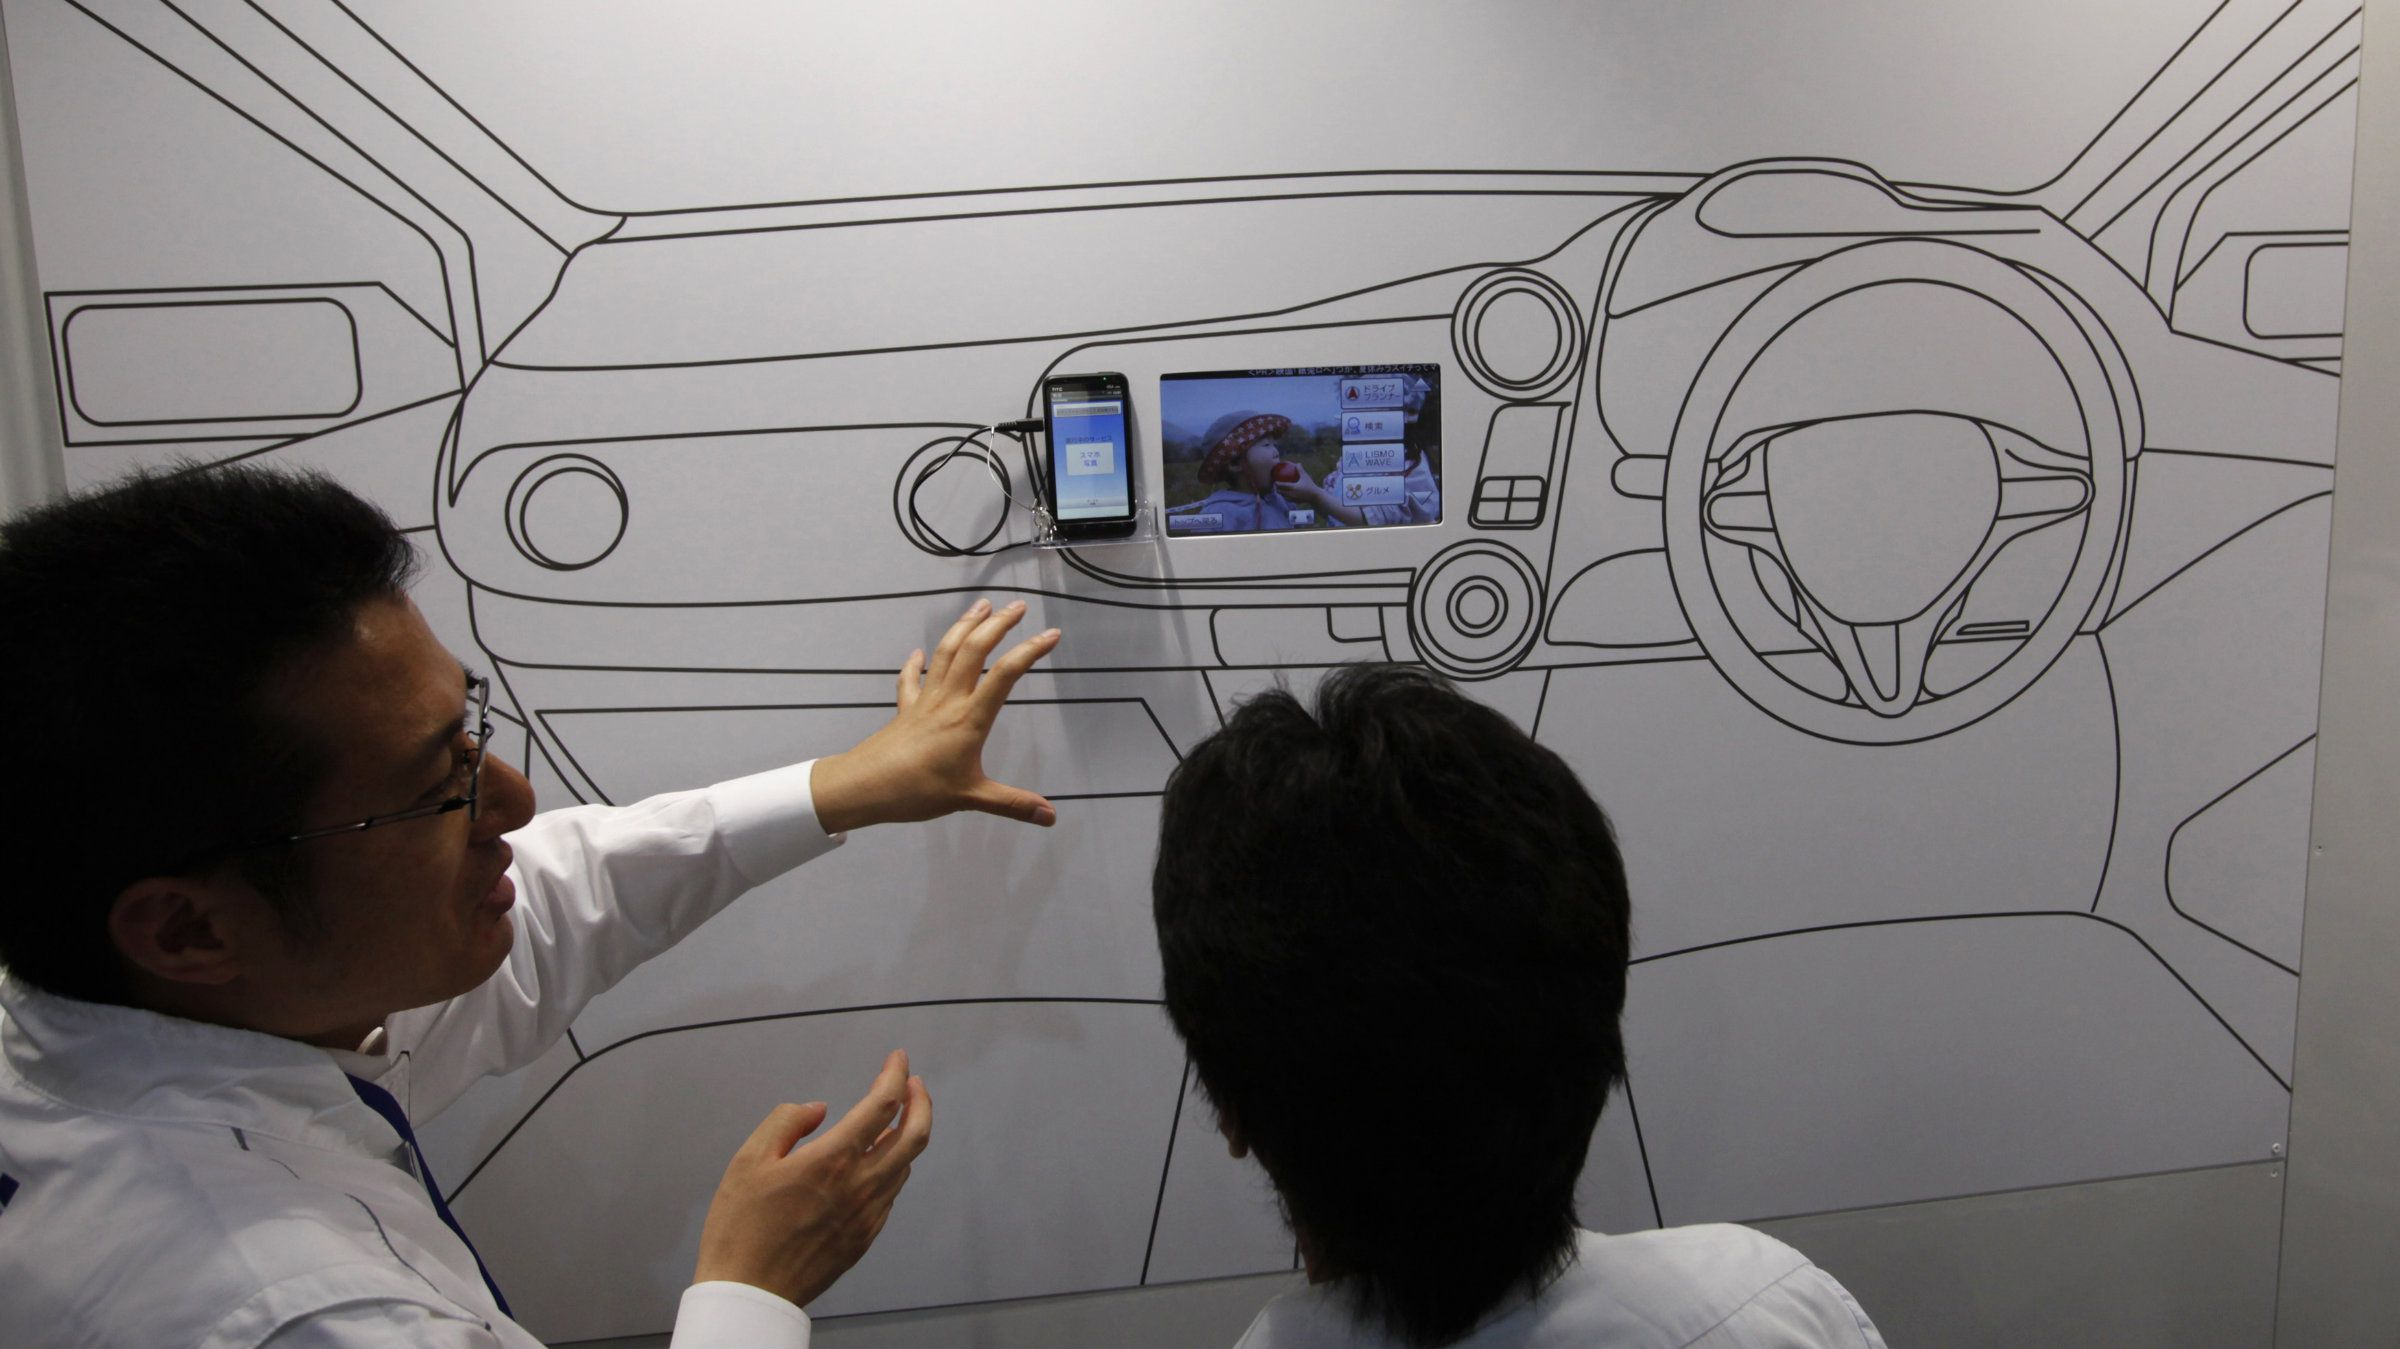 A smartphone and mobile phone carrier company demonstrates in-car smartphone device technology at Wireless Japan 2012, a smartphone and mobilephone technology exhibition, in Tokyo May 31, 2012. Japanese factory output rose in April at a slower pace than expected, in a discouraging sign that China's slowing economy and Europe's debt crisis will weigh on Japan's fragile recovery. REUTERS/Issei Kato